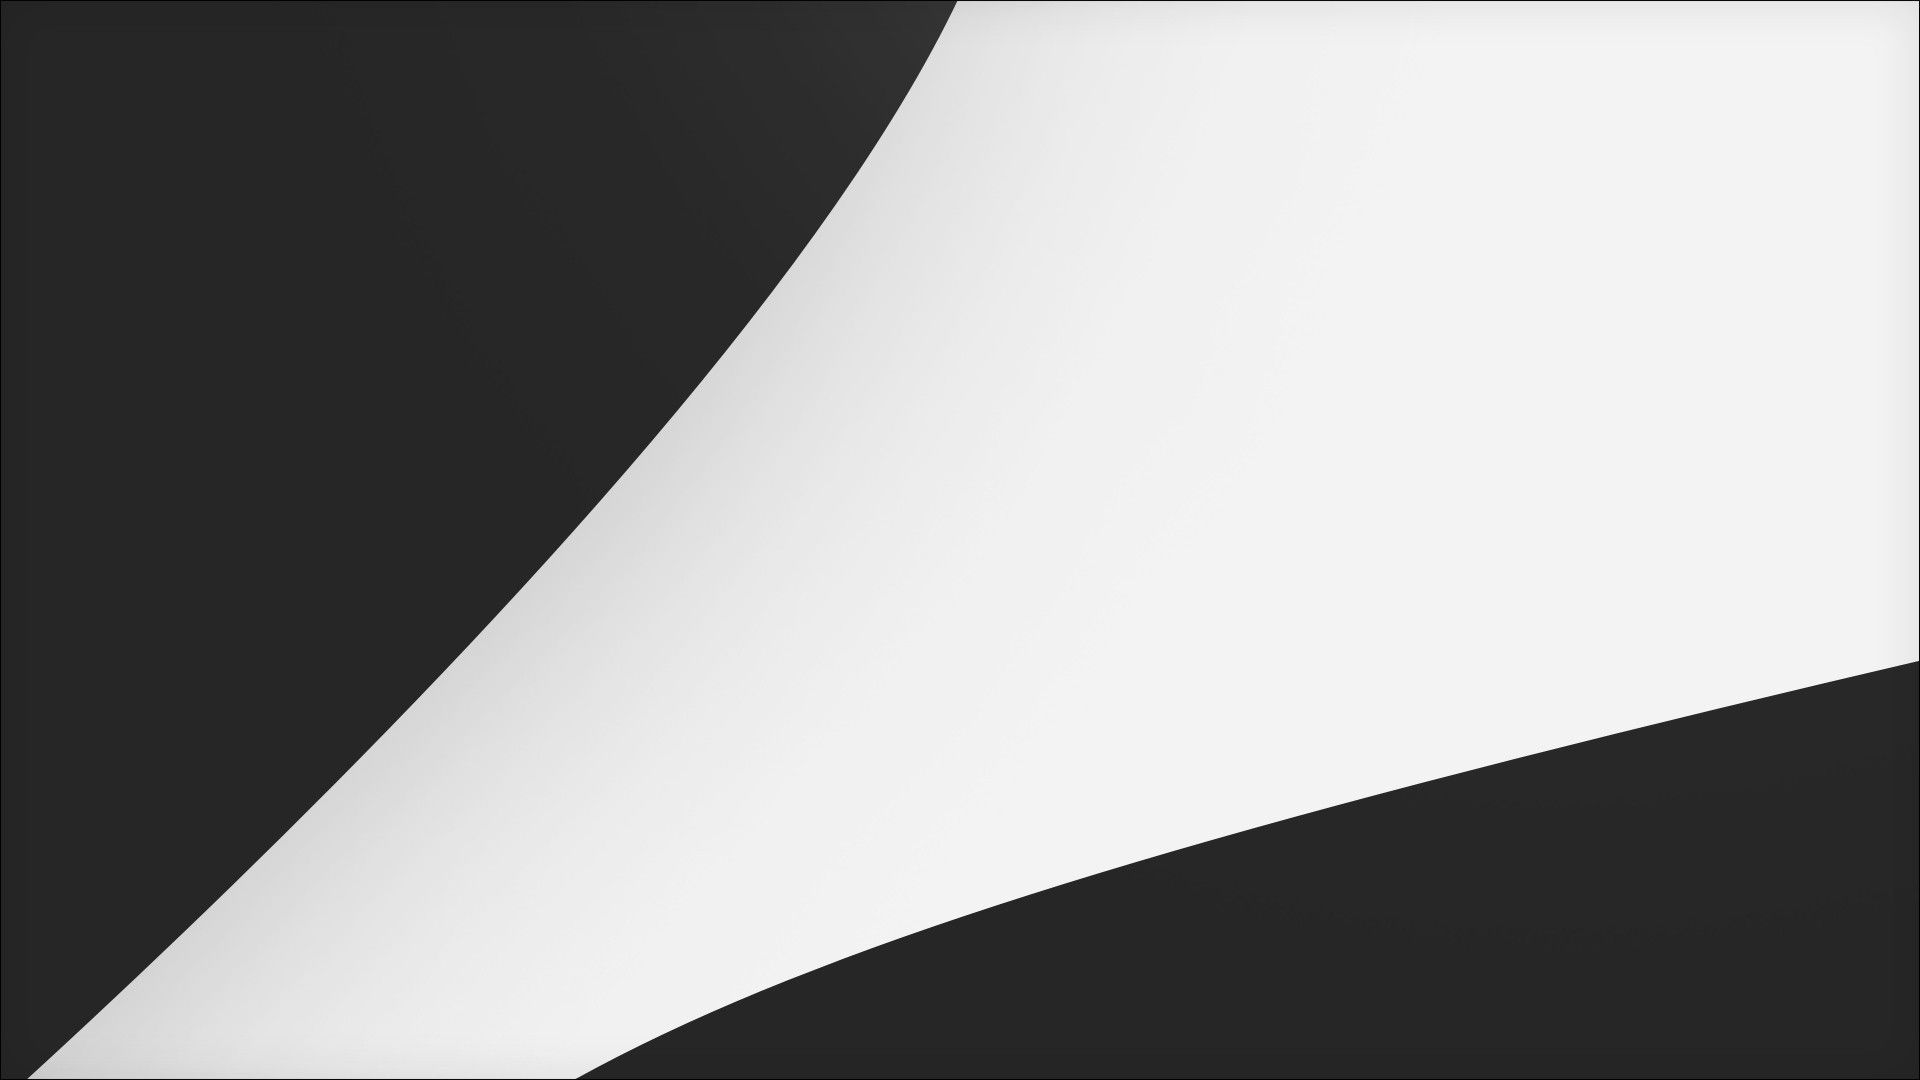 White Abstract Wallpaper High Resolution On Wallpaper 1080p Hd In 2020 Black And White Wallpaper White Wallpaper Gold Abstract Wallpaper